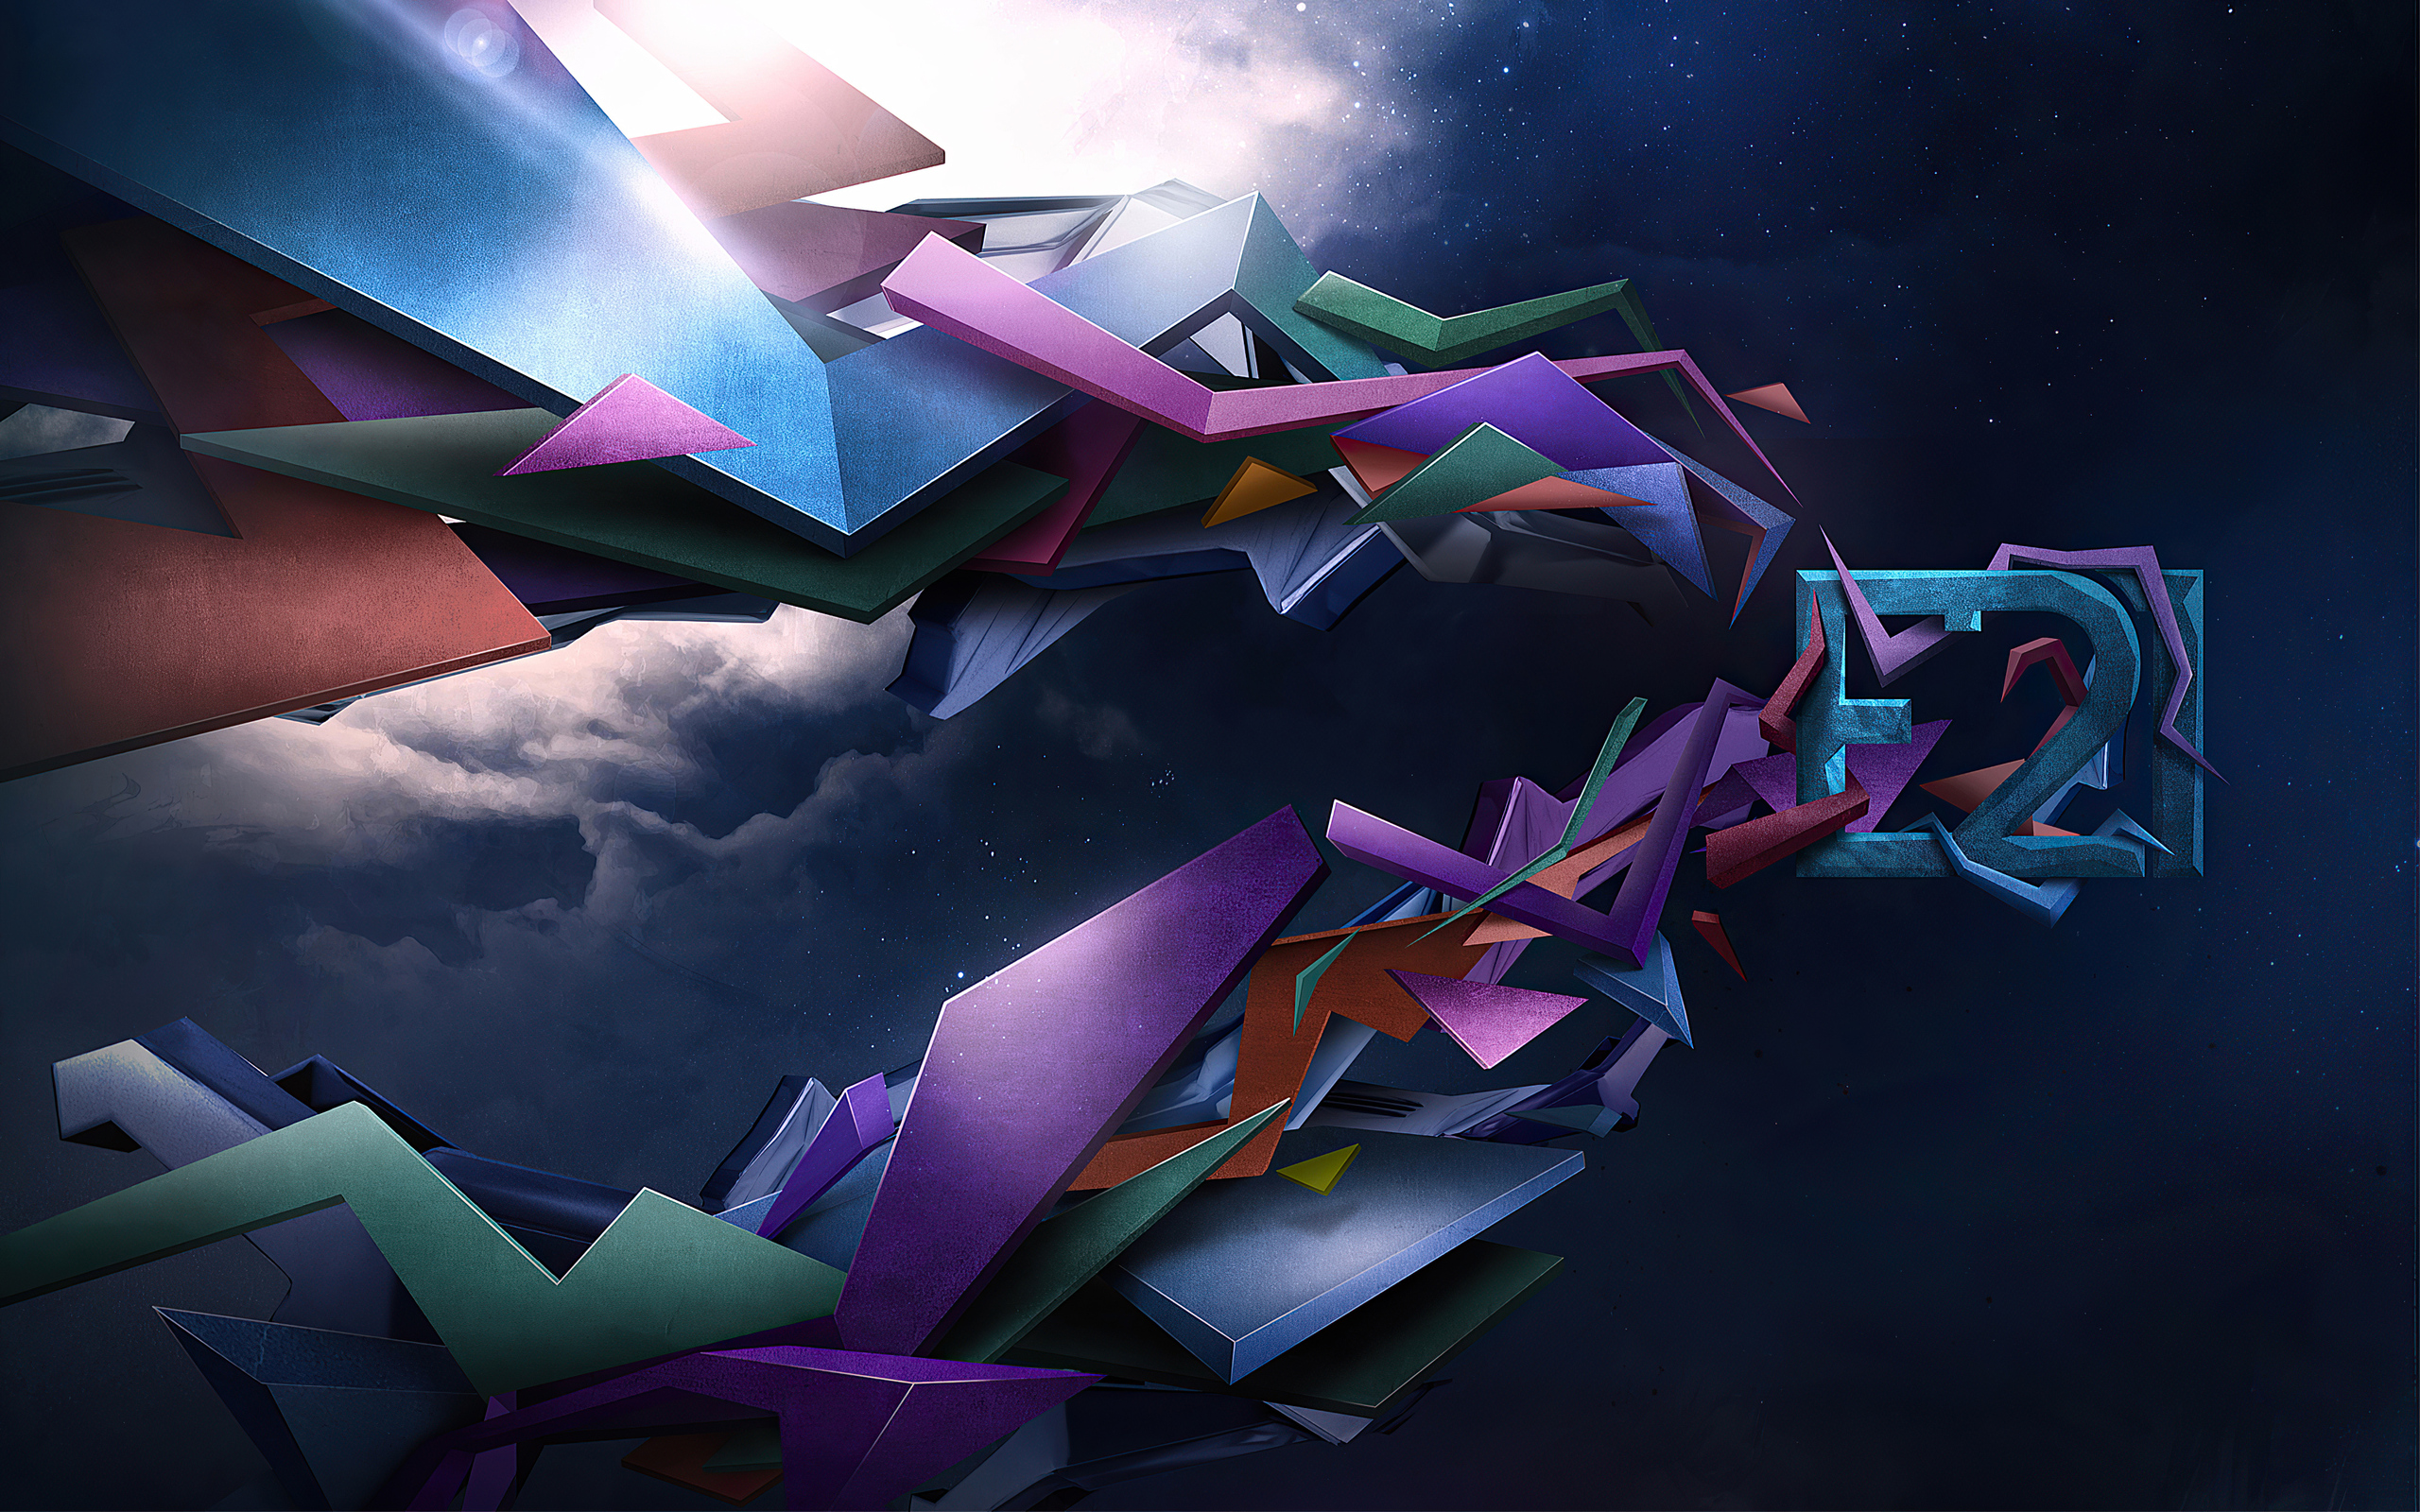 artistic-3d-shapes-4k-abstract-q7.jpg